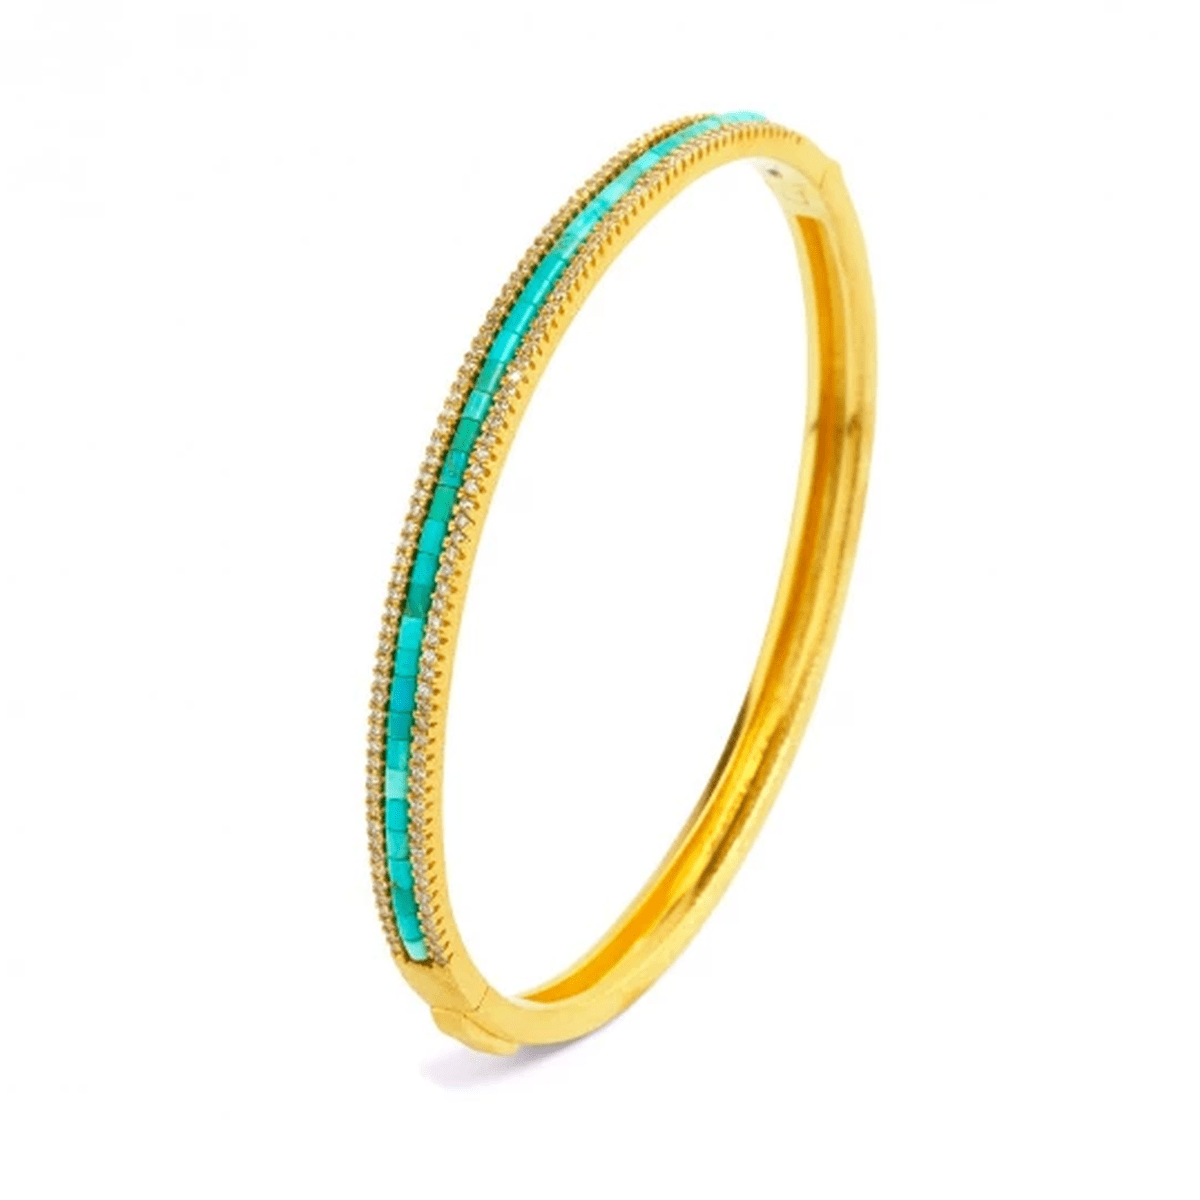 Alana Turquoise Bracelet - 63112256-Bernd Wolf-Renee Taylor Gallery